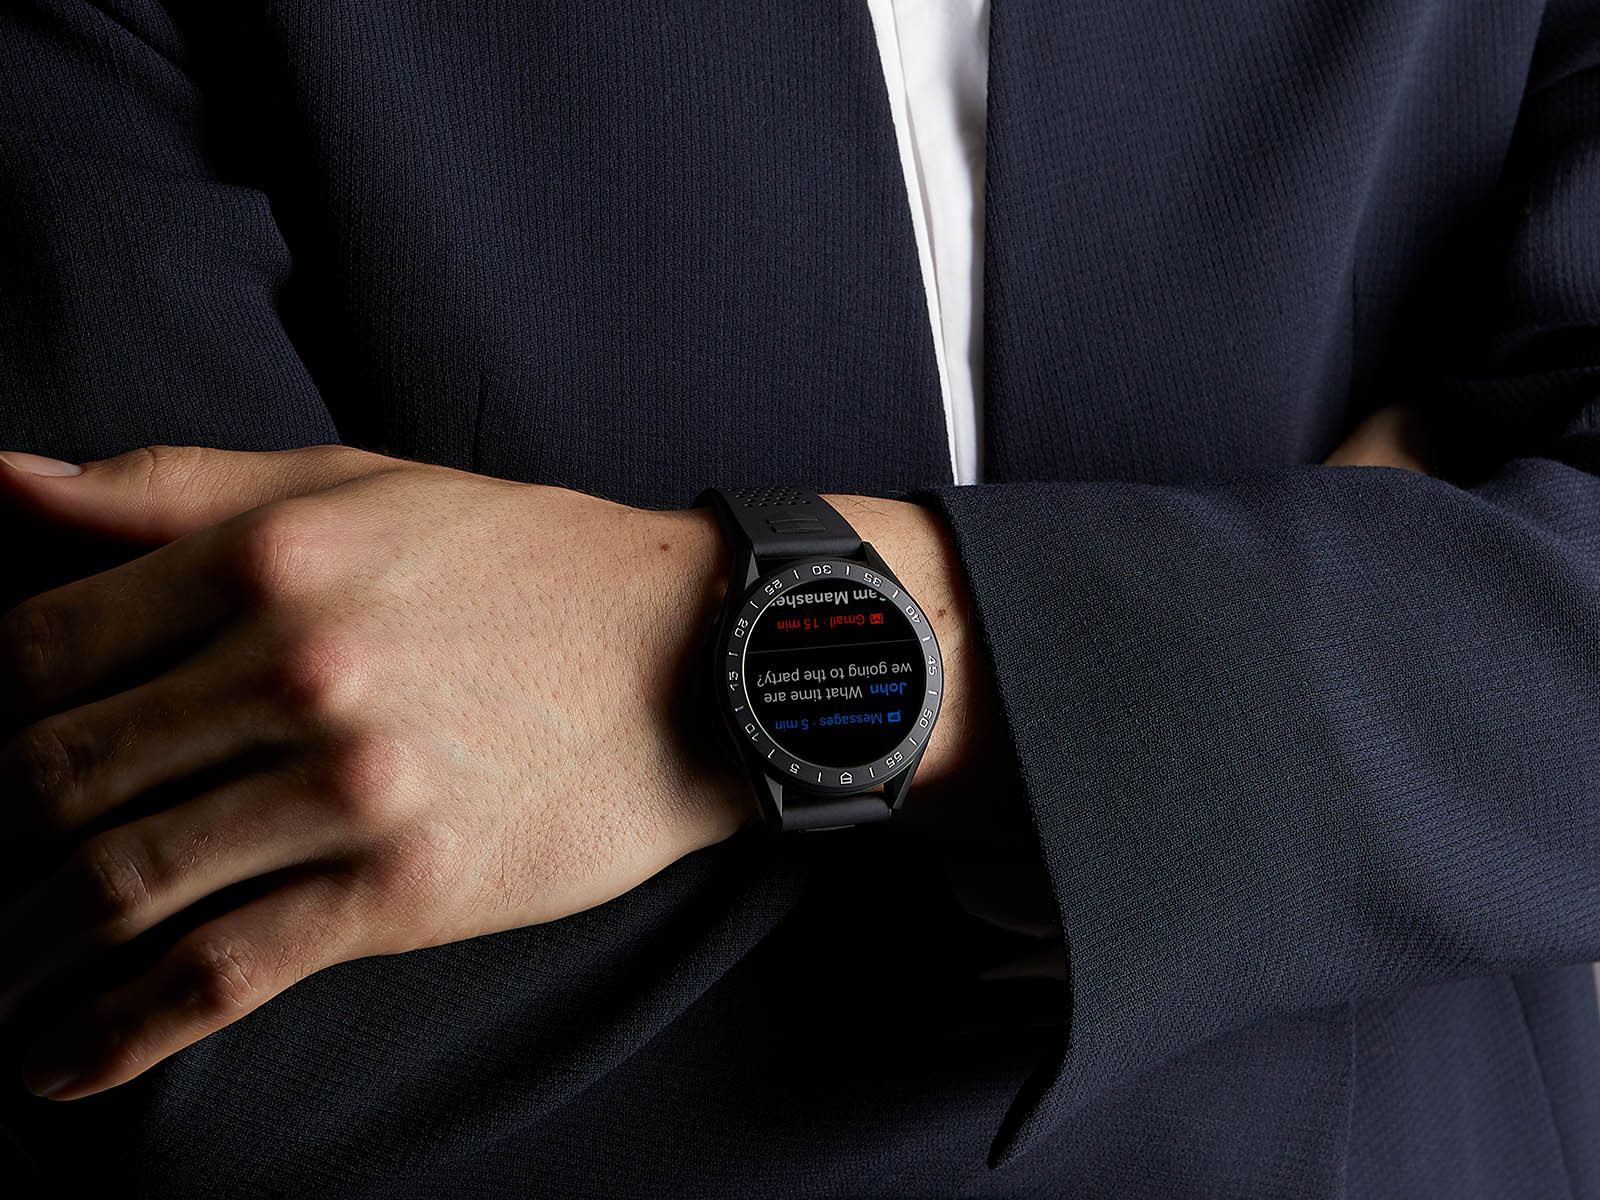 tag-heuer-connected-2020-7.jpg